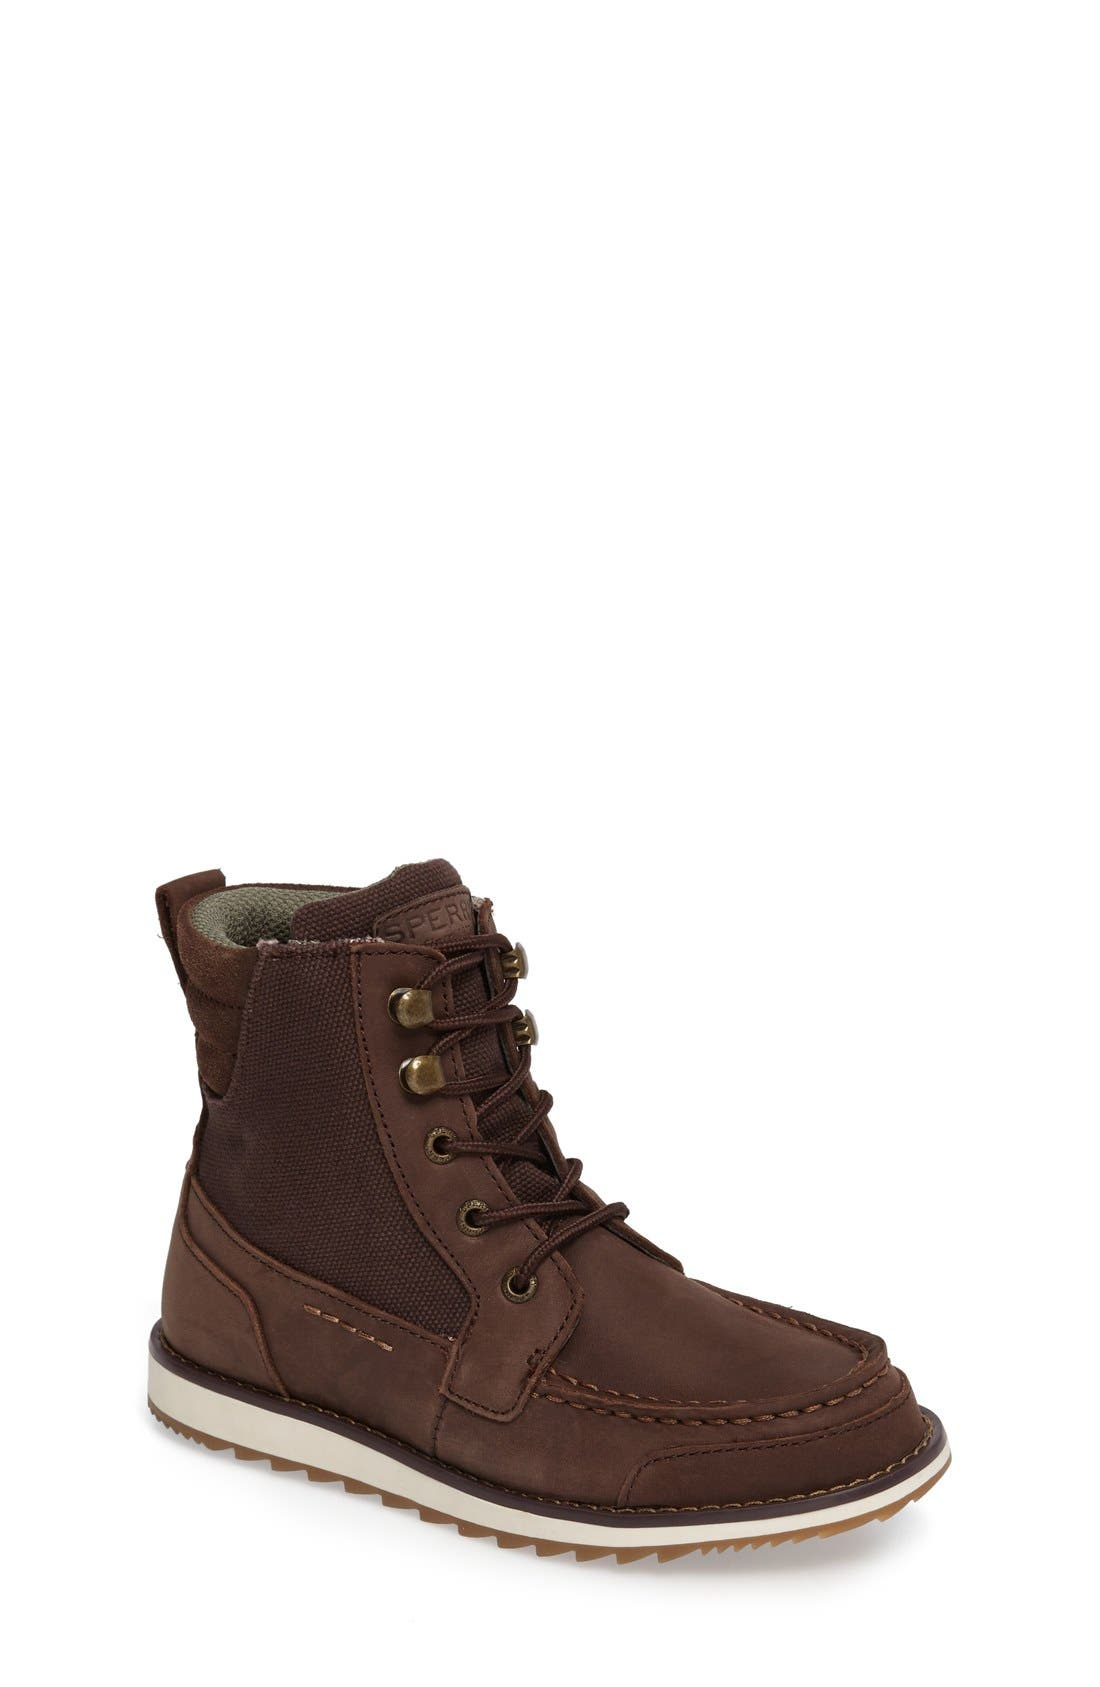 Sperry Dockyard Boot,                             Main thumbnail 1, color,                             Brown Faux Leather